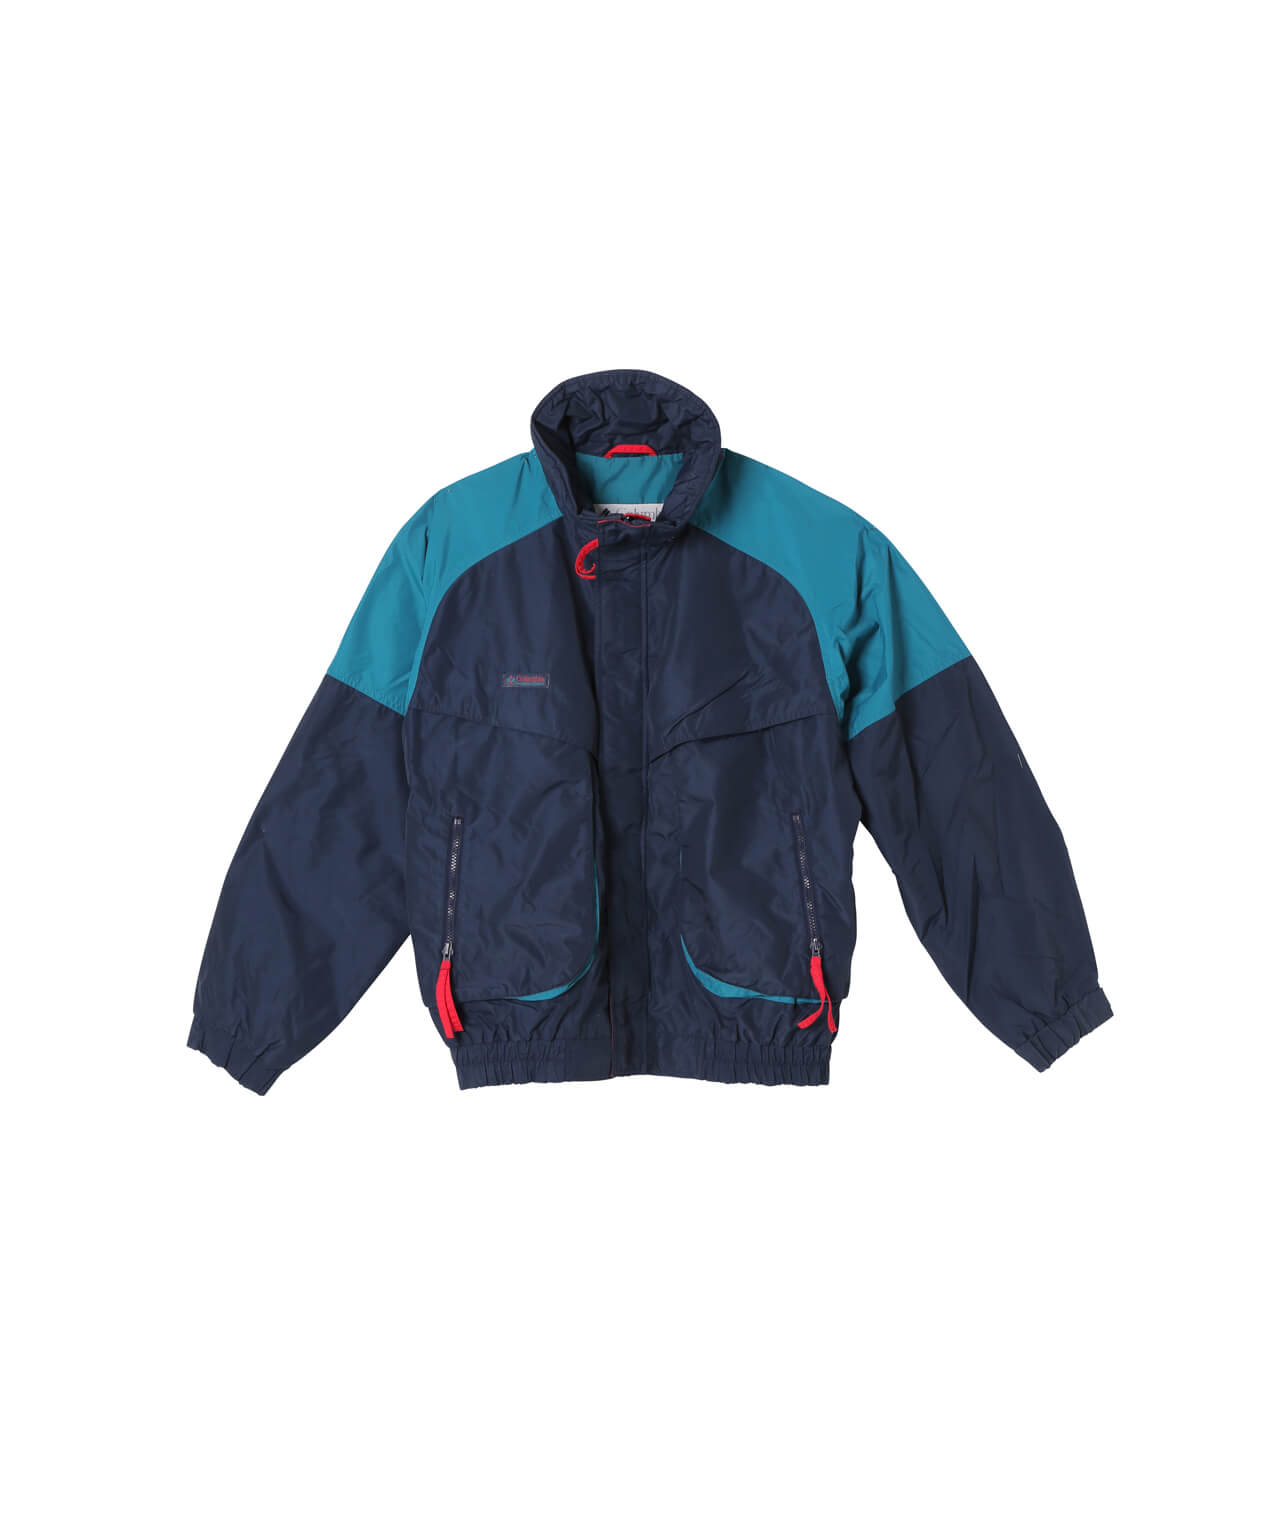 USED/COLUMBIA POWDER KEG MOUNTAIN JACKET 詳細画像 NAVY 1